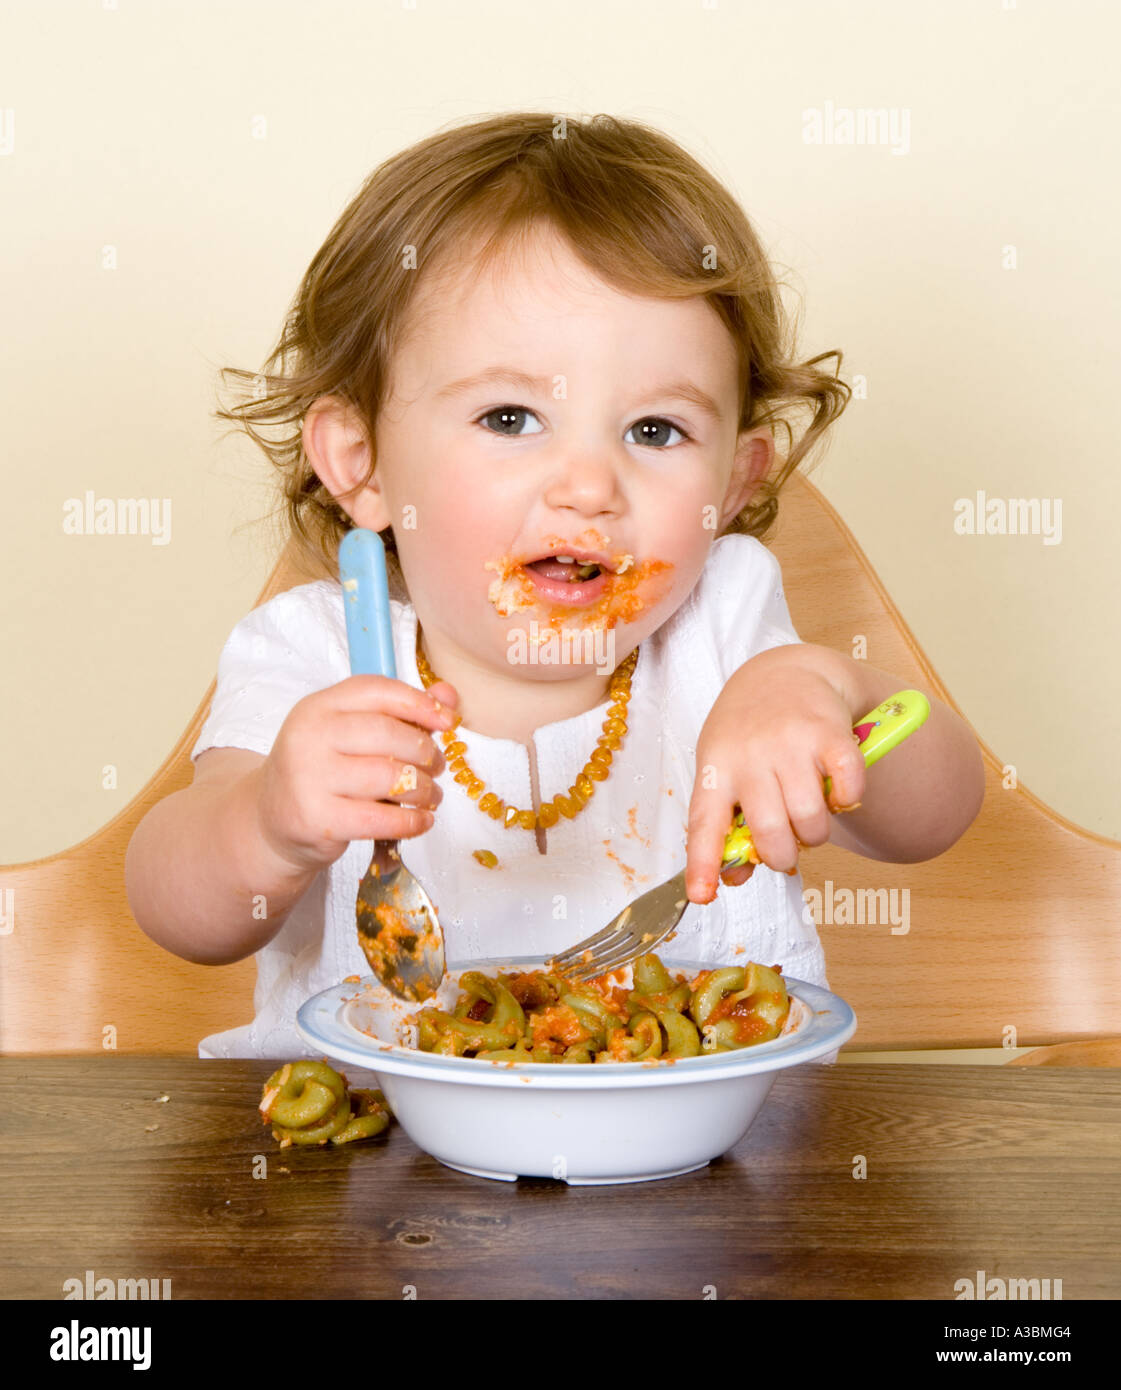 baby eating chair ladder back dining pasta in high stock photo 6134275 alamy